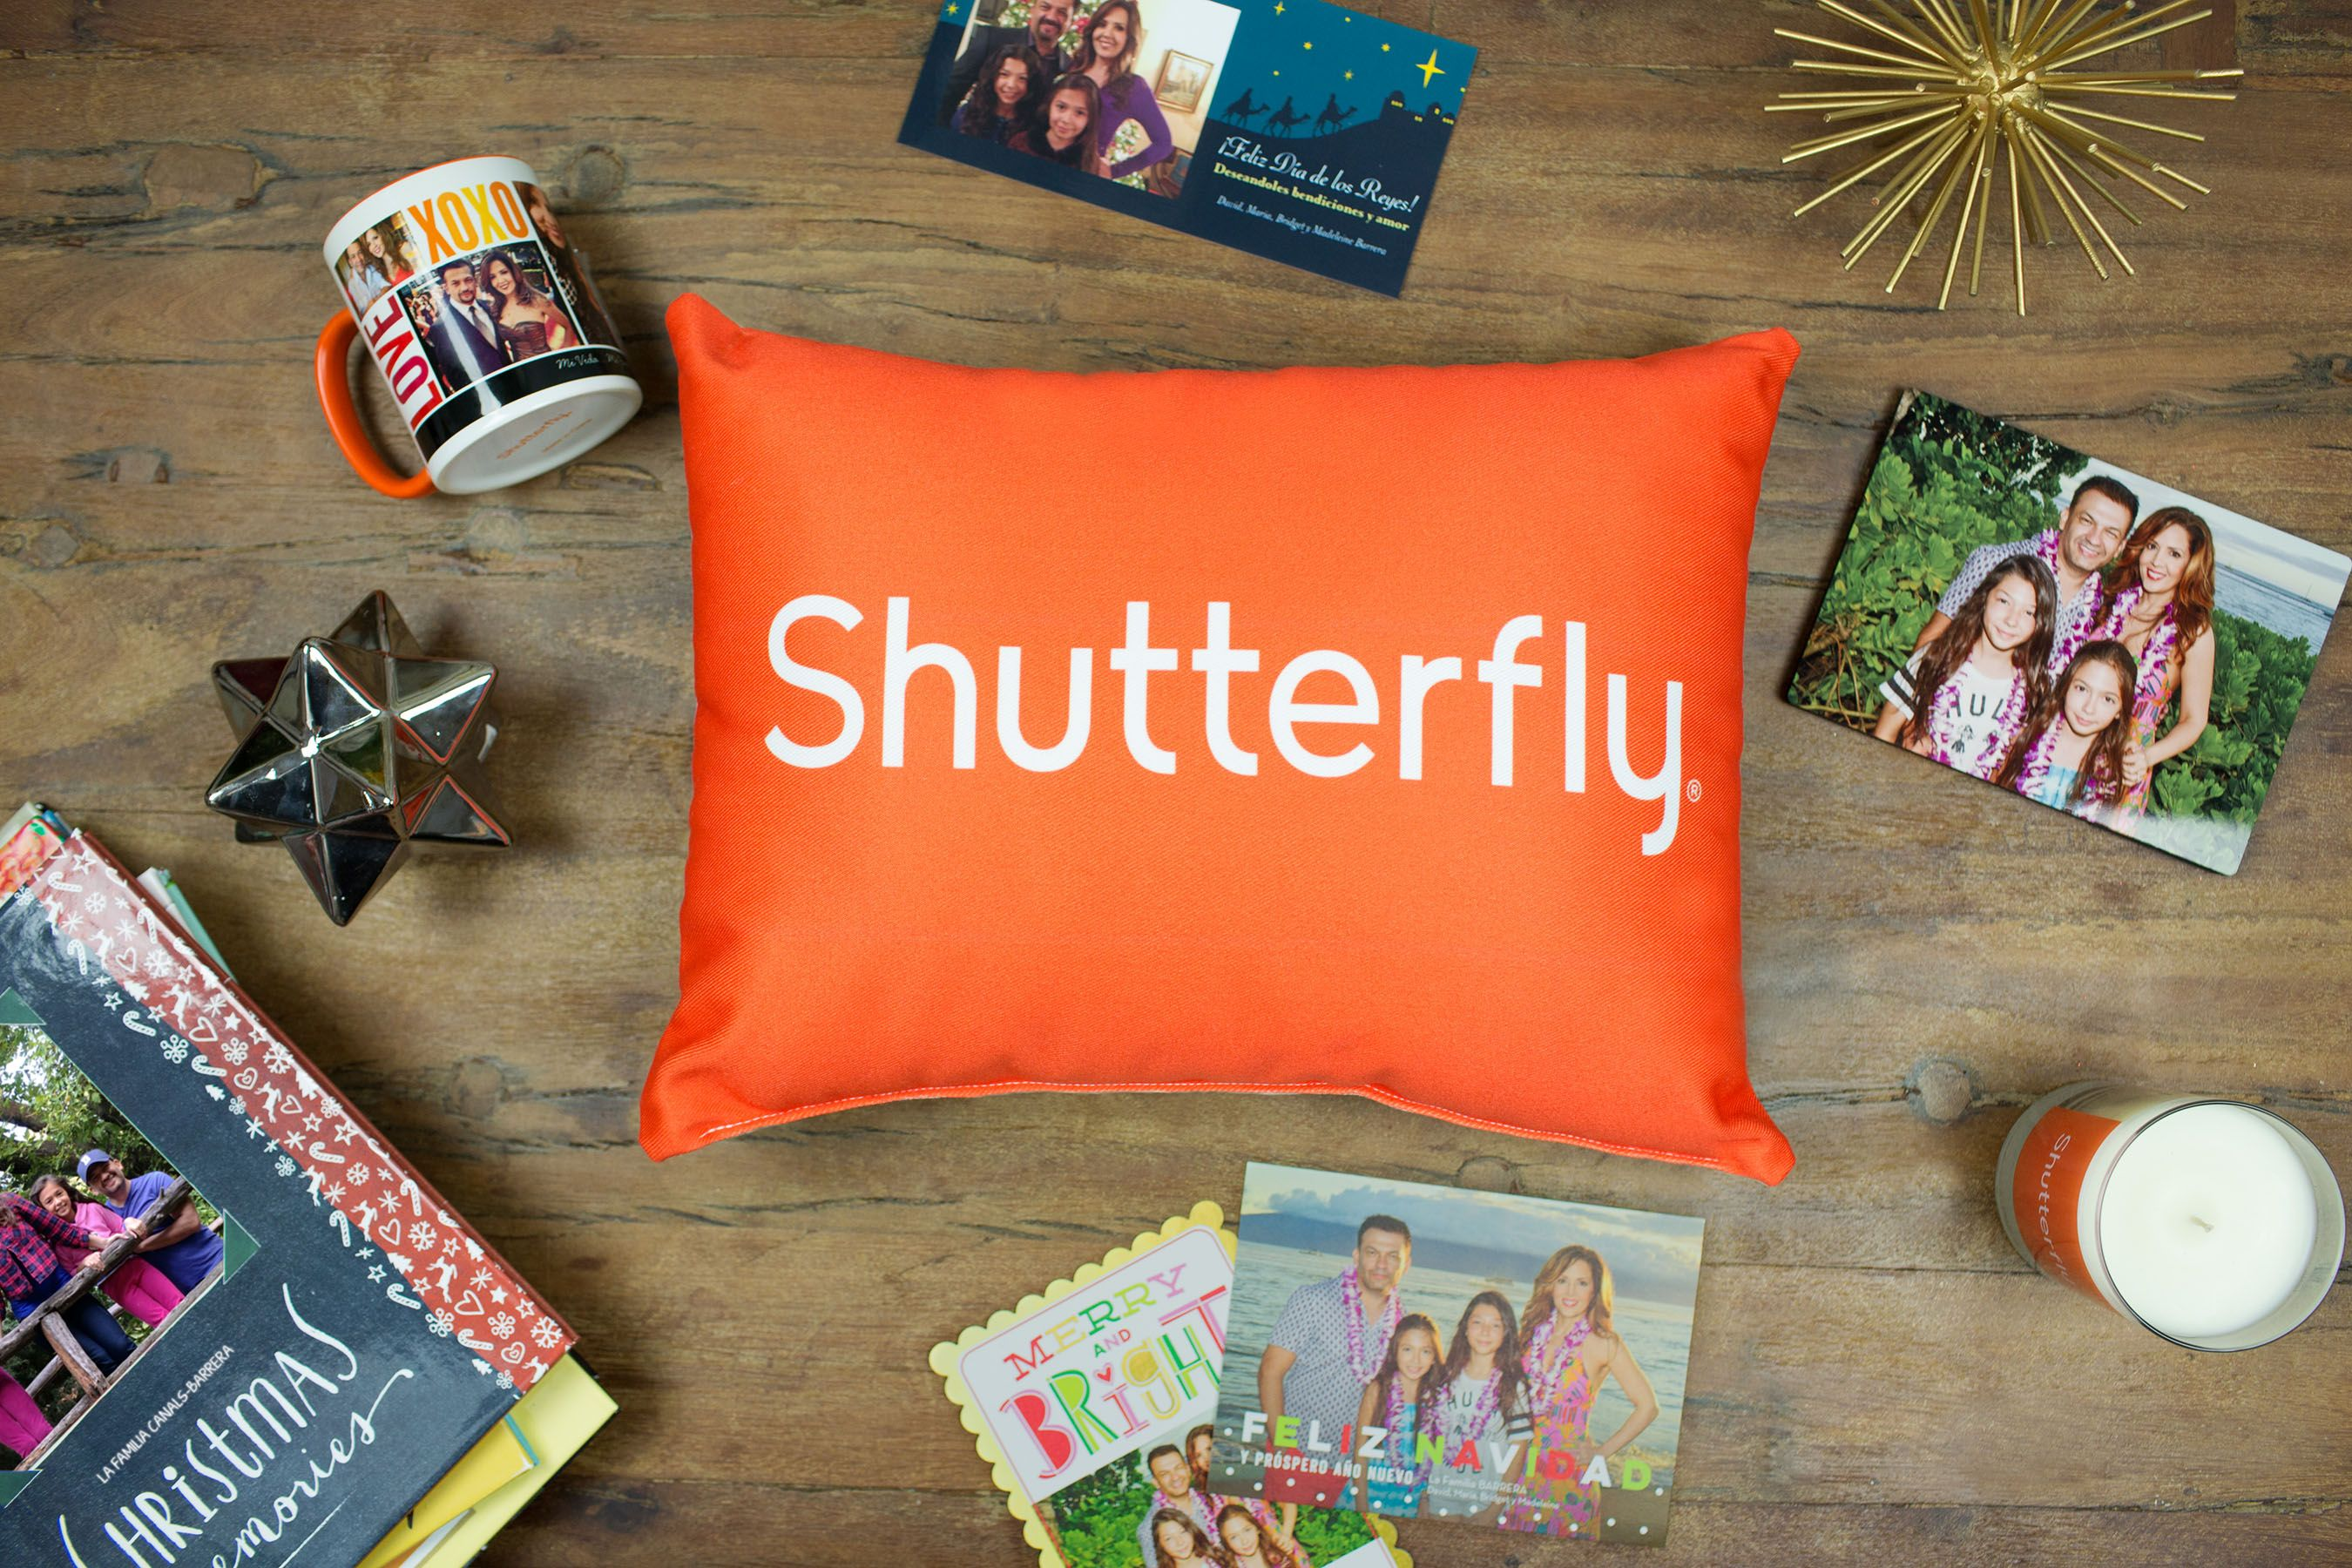 Shutterfly Coupon Get 20 Off 20 Or Free Photo Book I Love Photos I Love Taking Photos Of Our Travel And Tu Make A Photo Book Photo Book Shutterfly Coupons